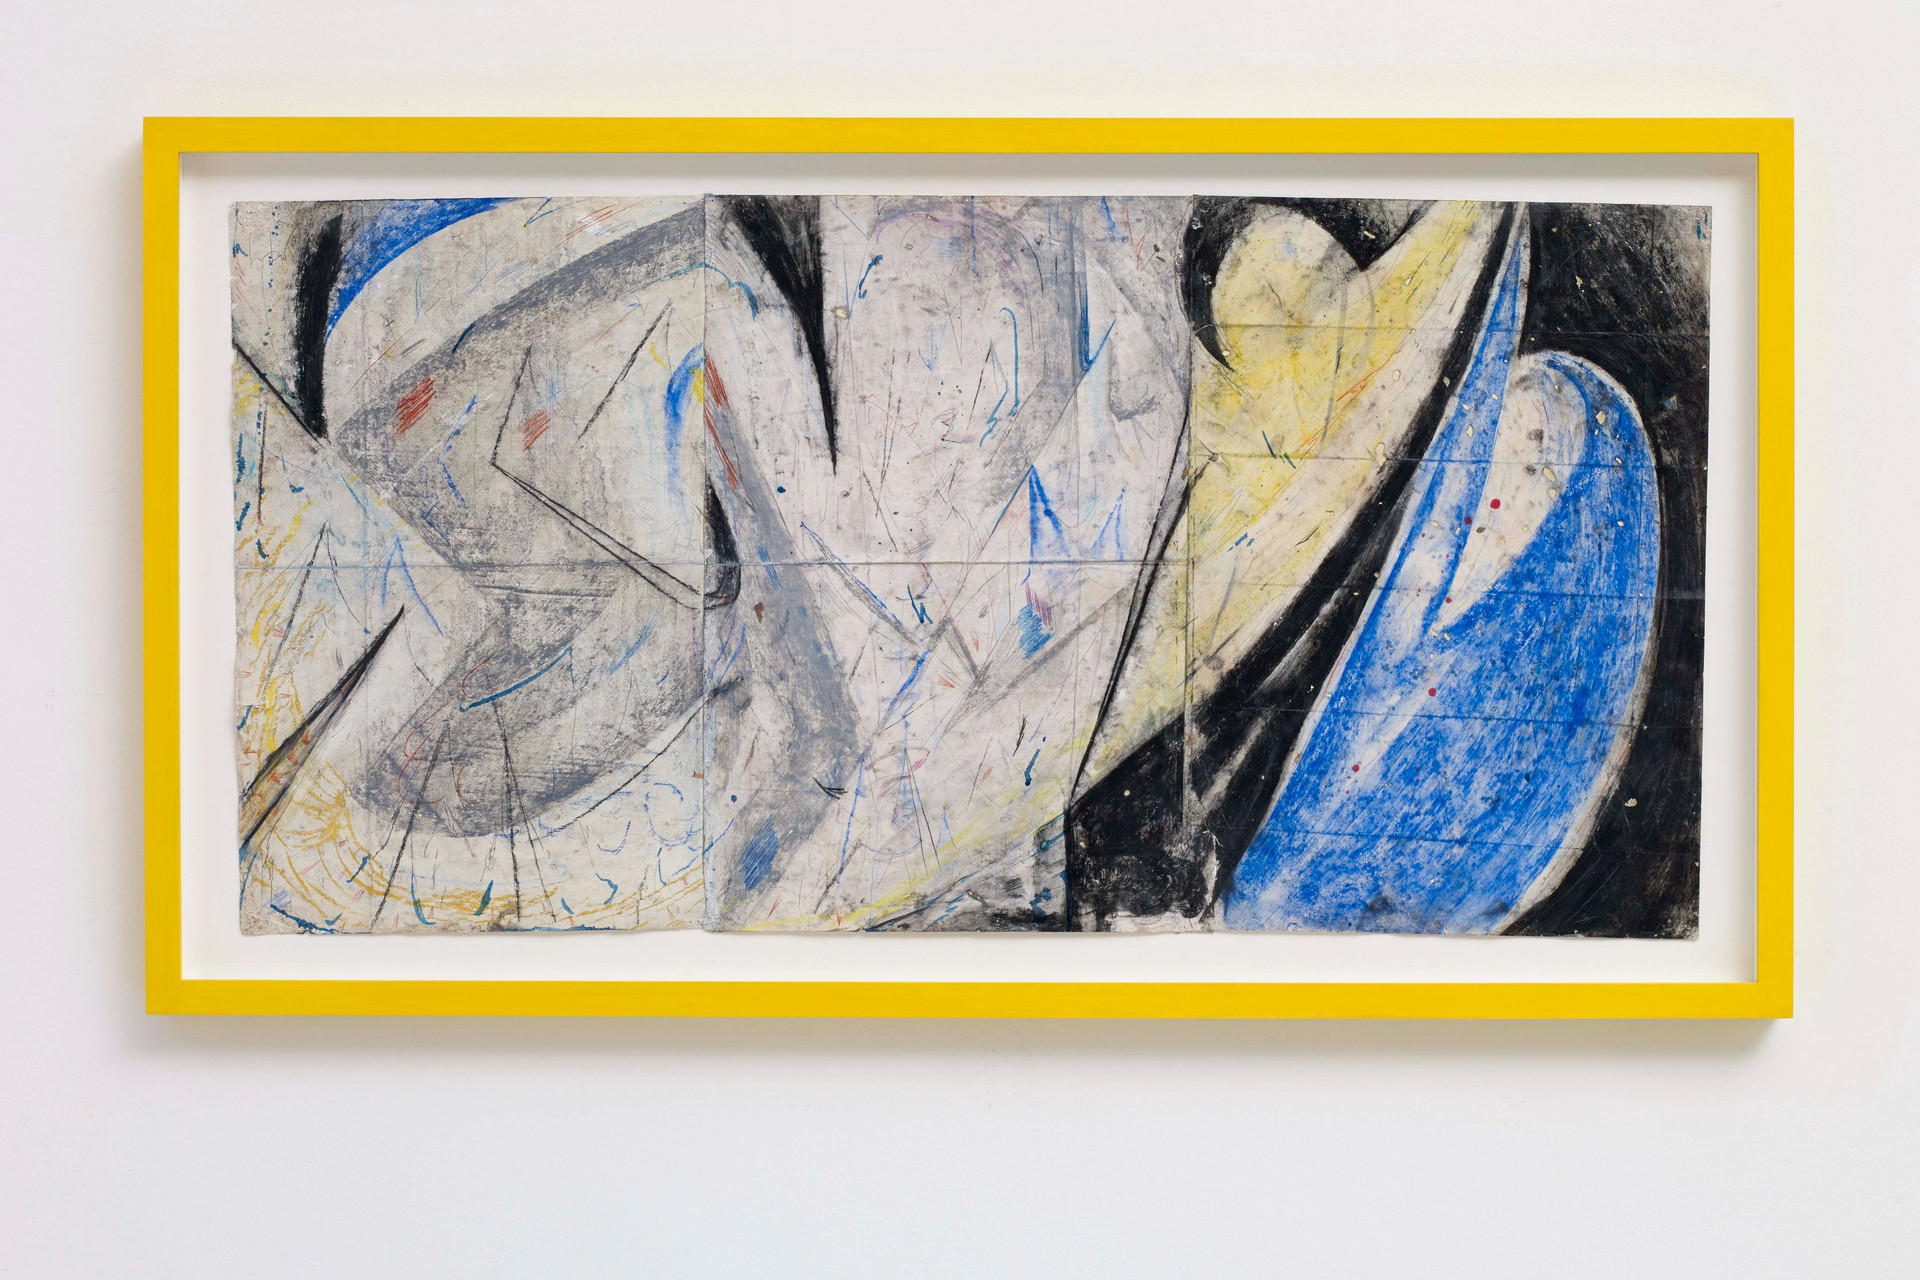 ~ my hard drive is the best hard drive. 2015-16. oil paint, graphite and pastel on paper with artist frame. 51 x 93.5 x 4 cm